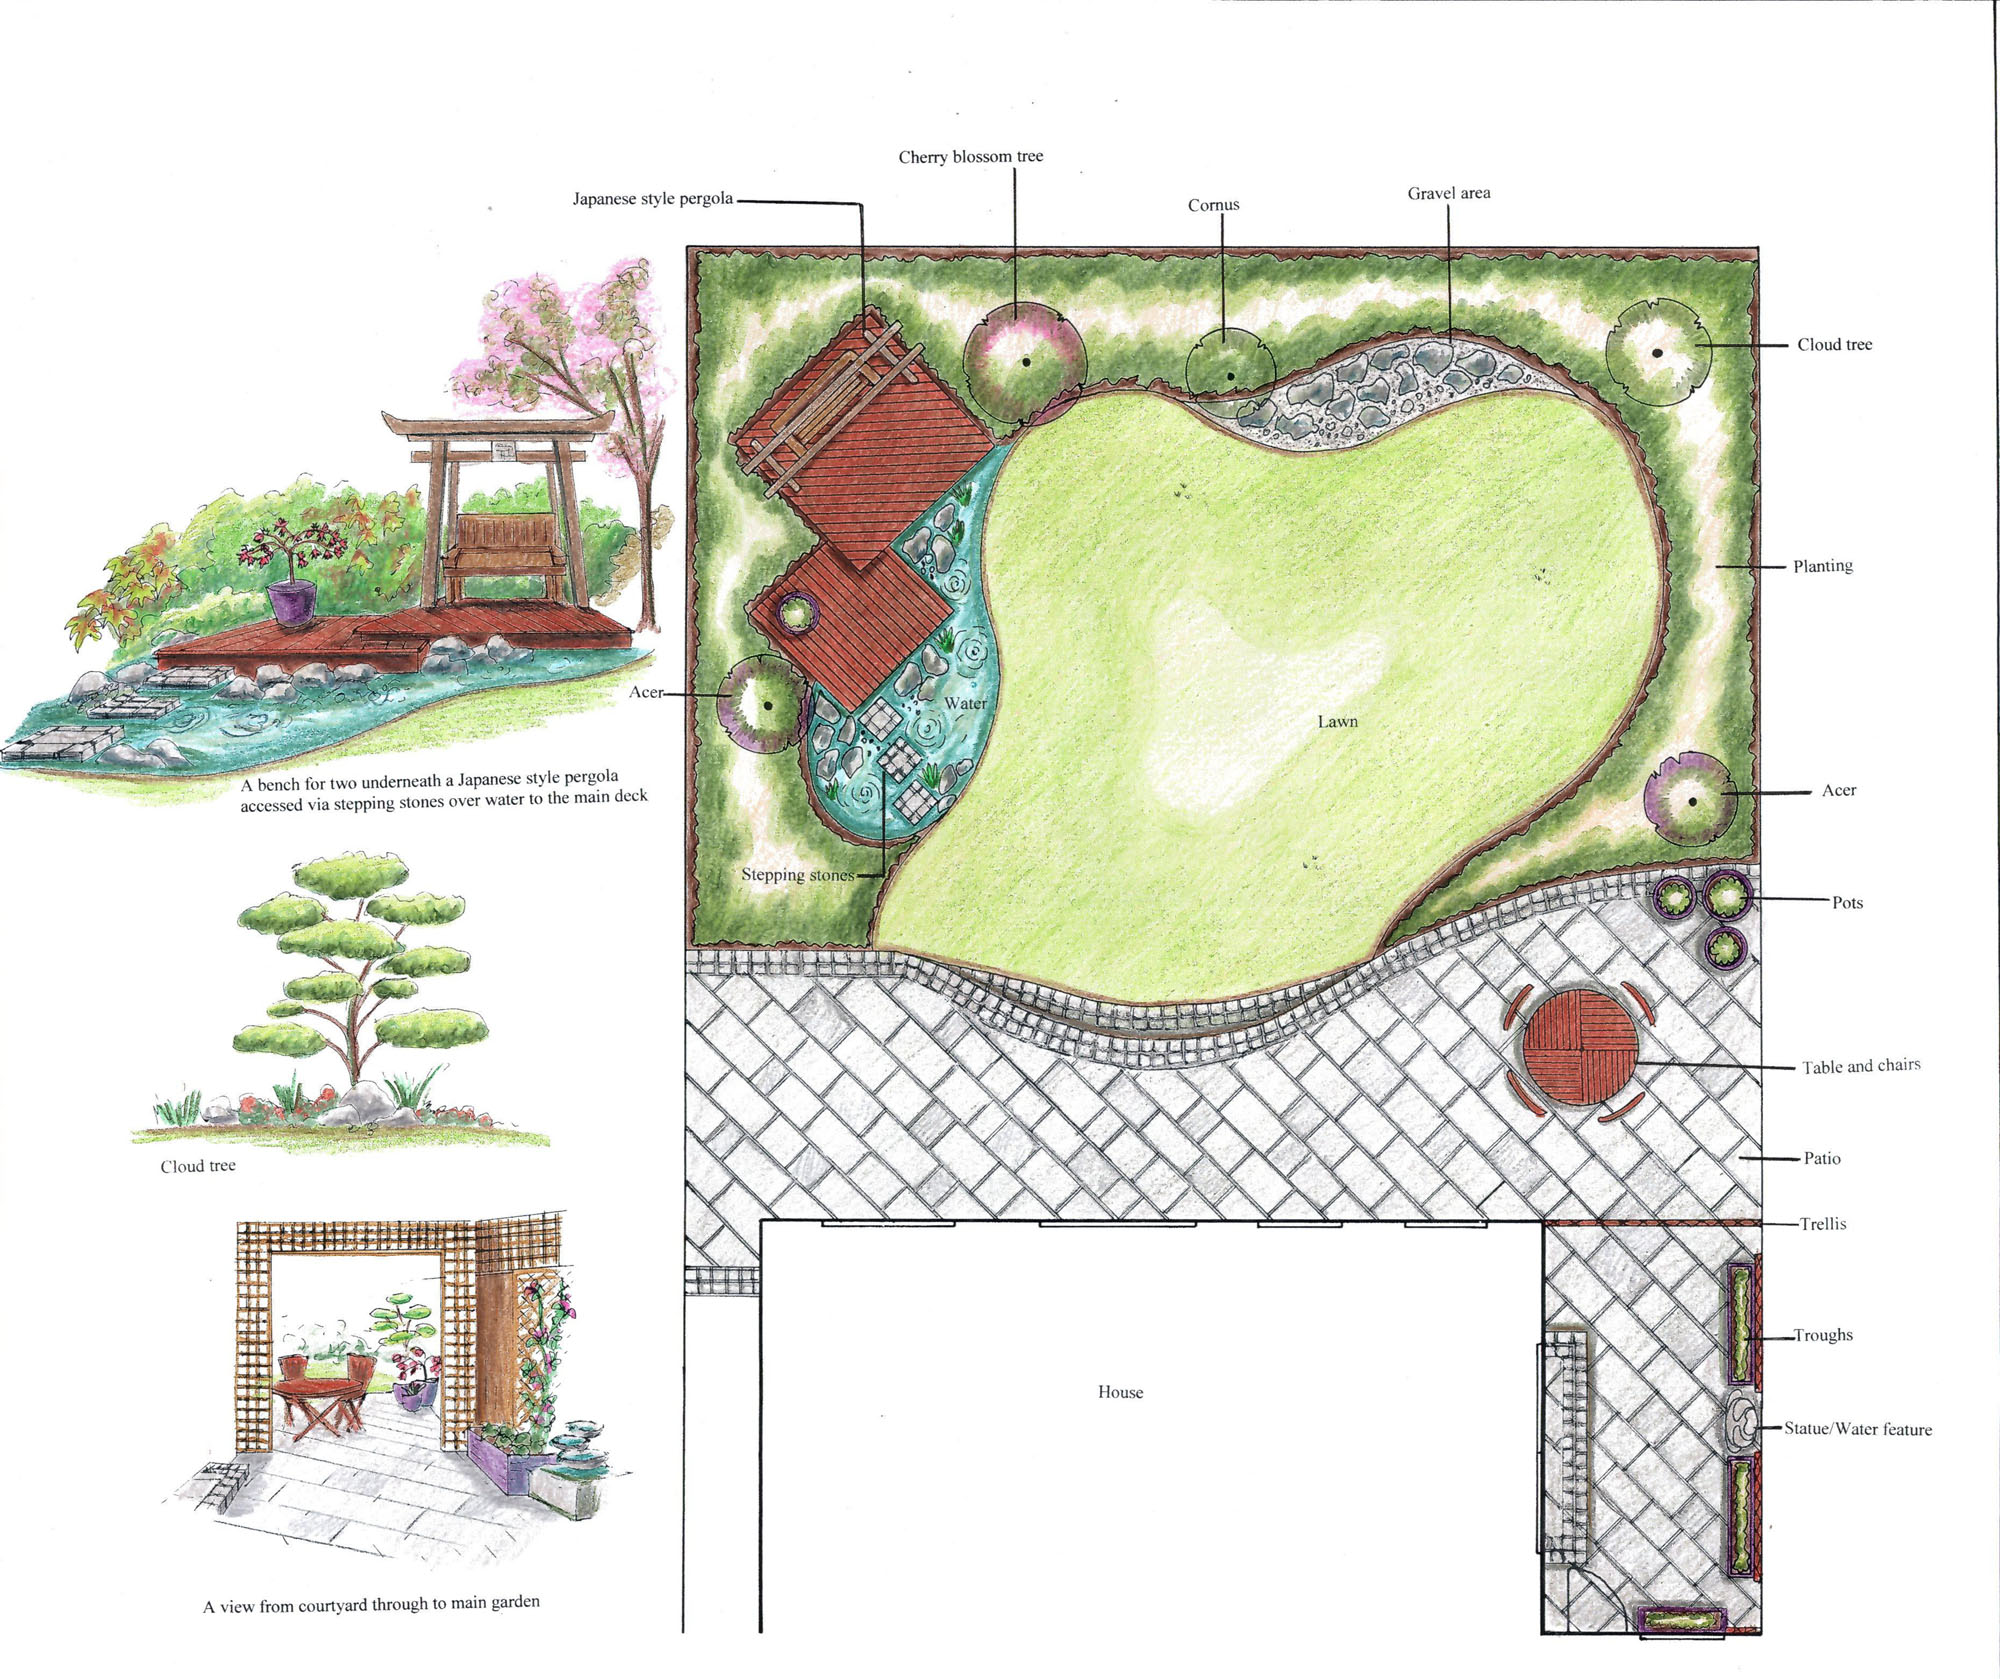 Joanna cowan garden design for Zen garden designs plan